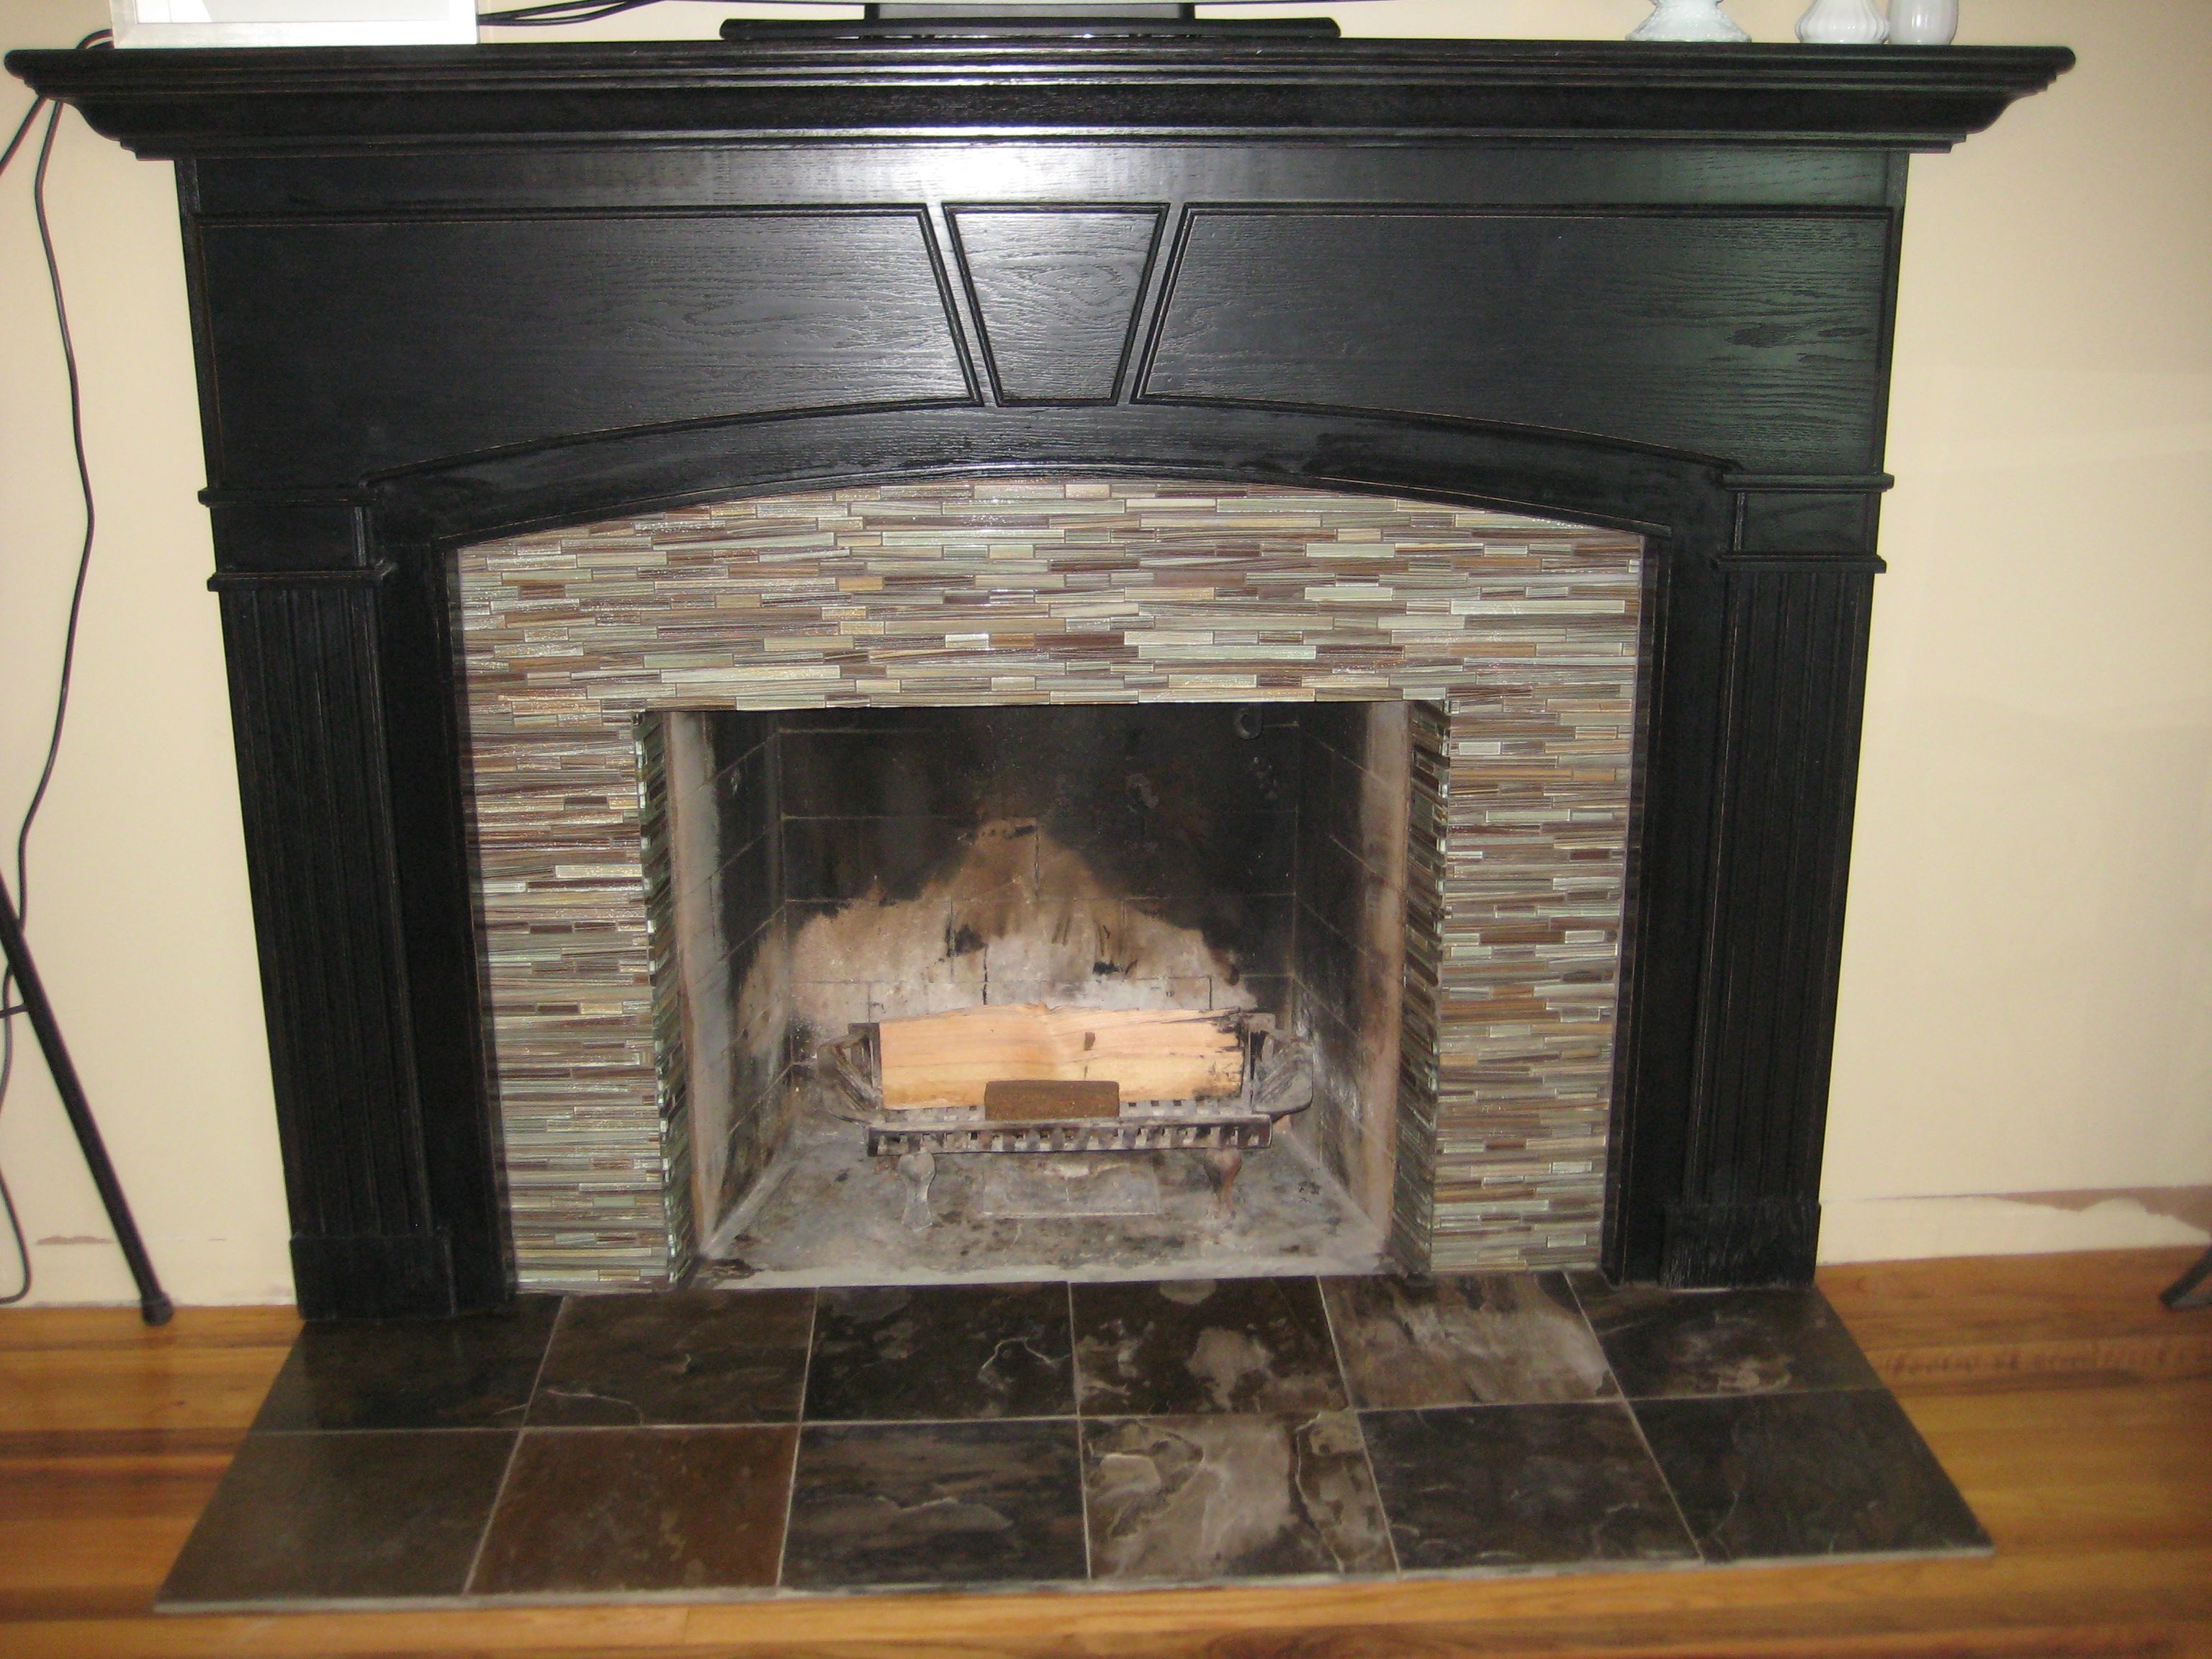 Fireplace Surround Design Ideas brick fireplace surround designs Cool Slate Tile Fireplace Surround And Black Wood Mantel Decoration In White Living Room Design With Wood Floor Ideas Of Inspiring Tile Fireplace Surround